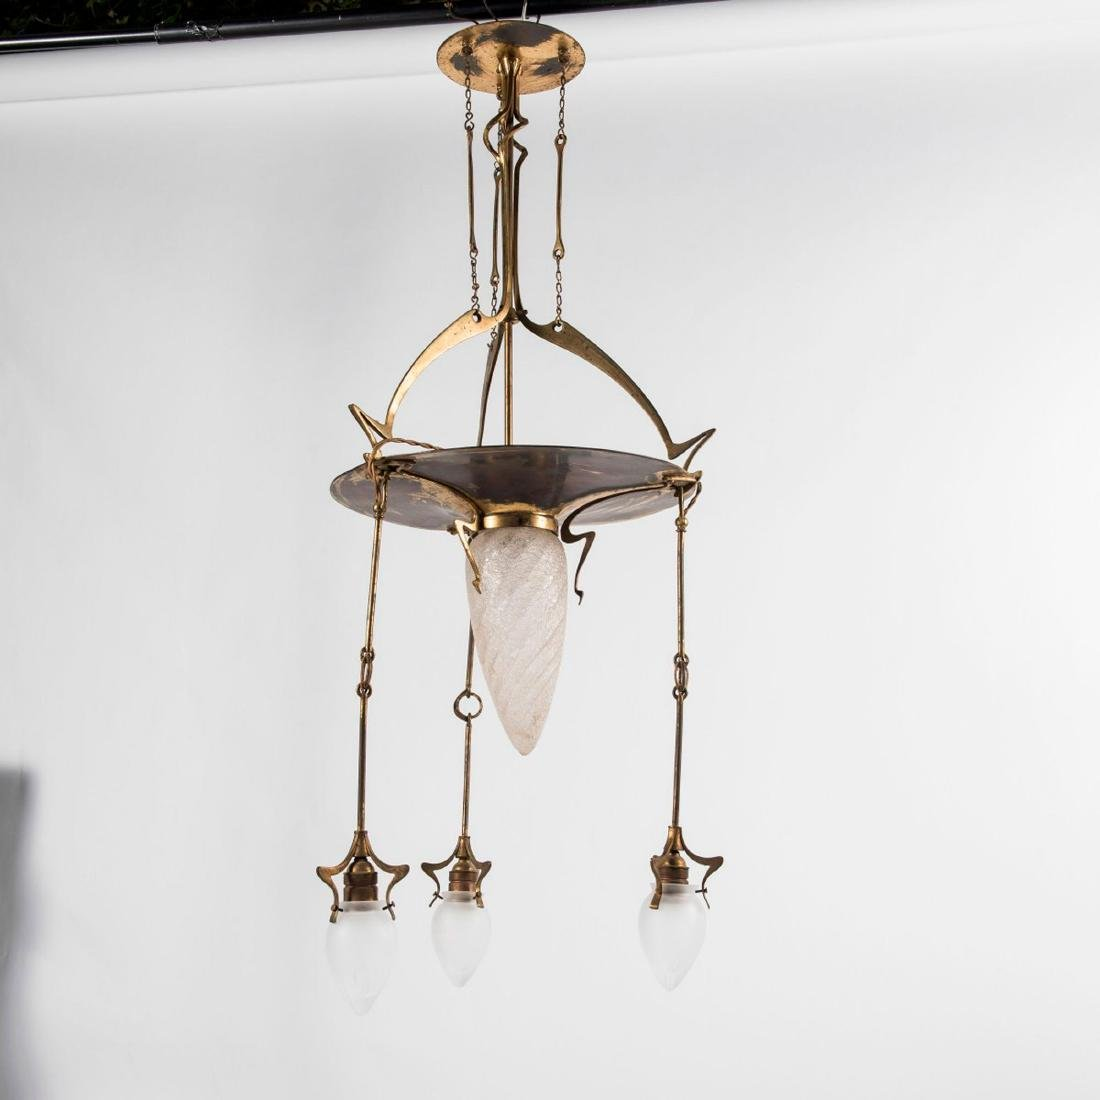 Ceiling light, c. 1910 - 3